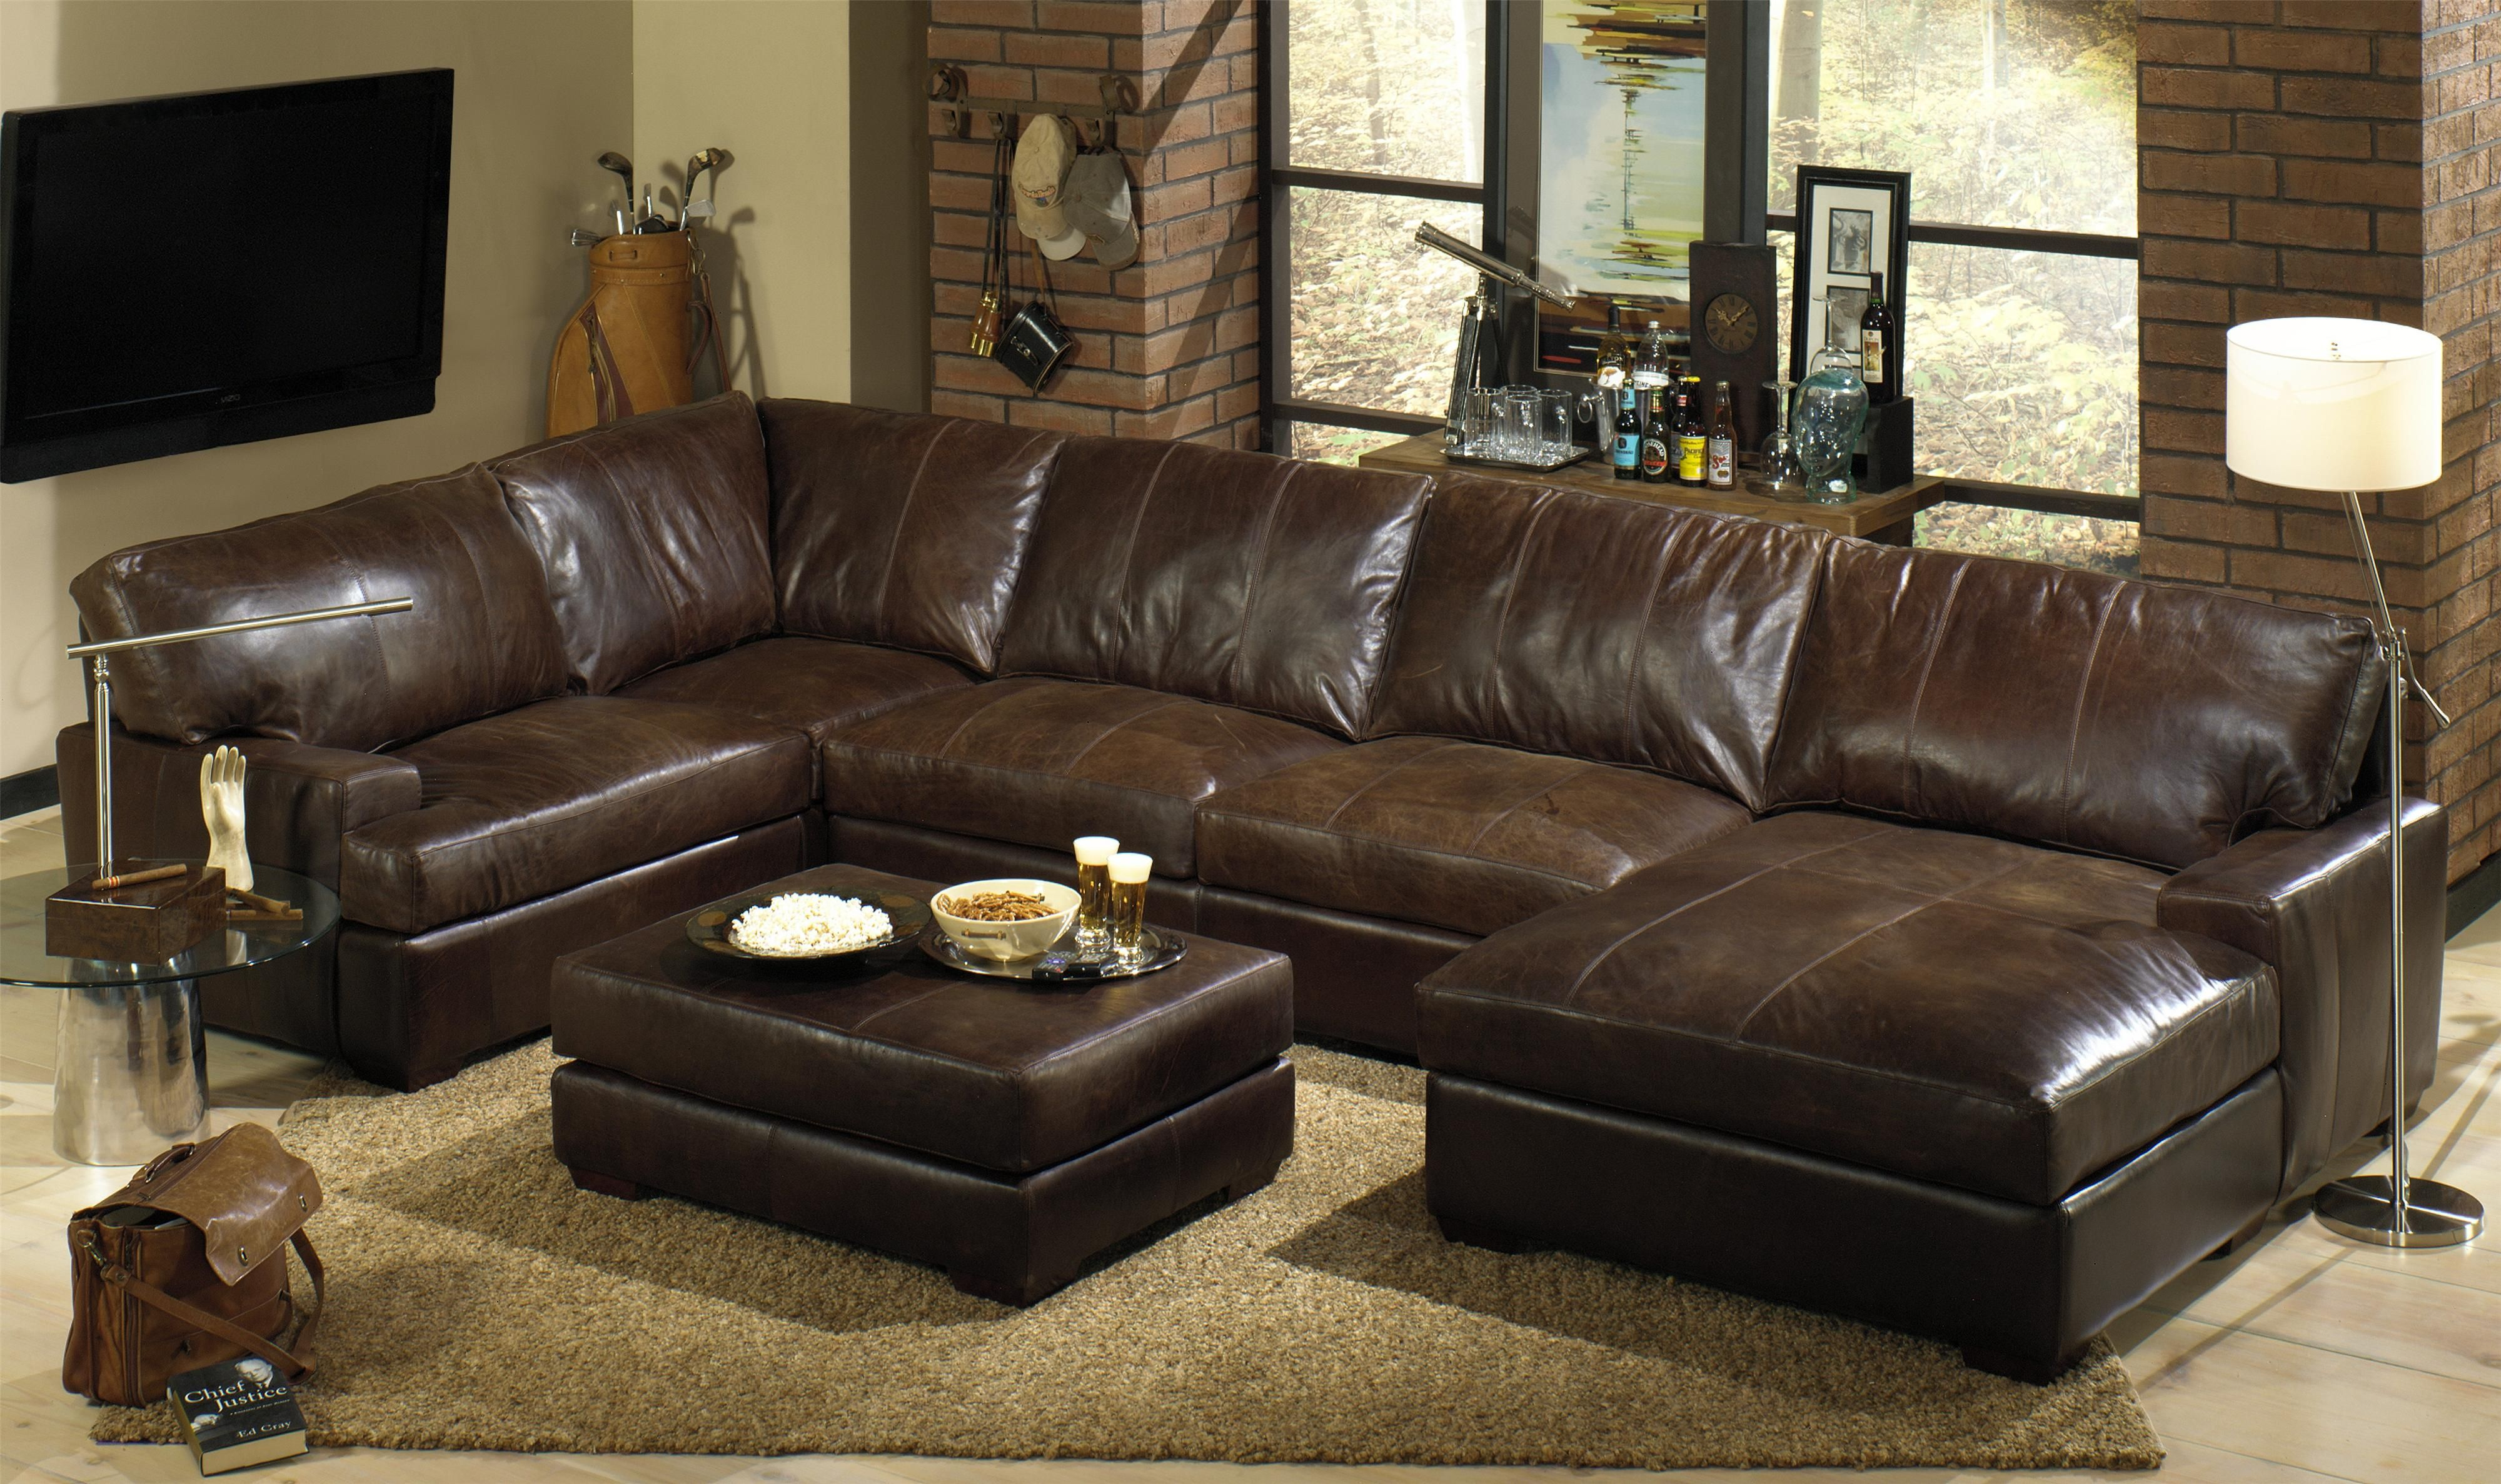 Traditional Leather Sectional Sofa With Recliner And Chaise Design IDea : dark sectional sofa - Sectionals, Sofas & Couches